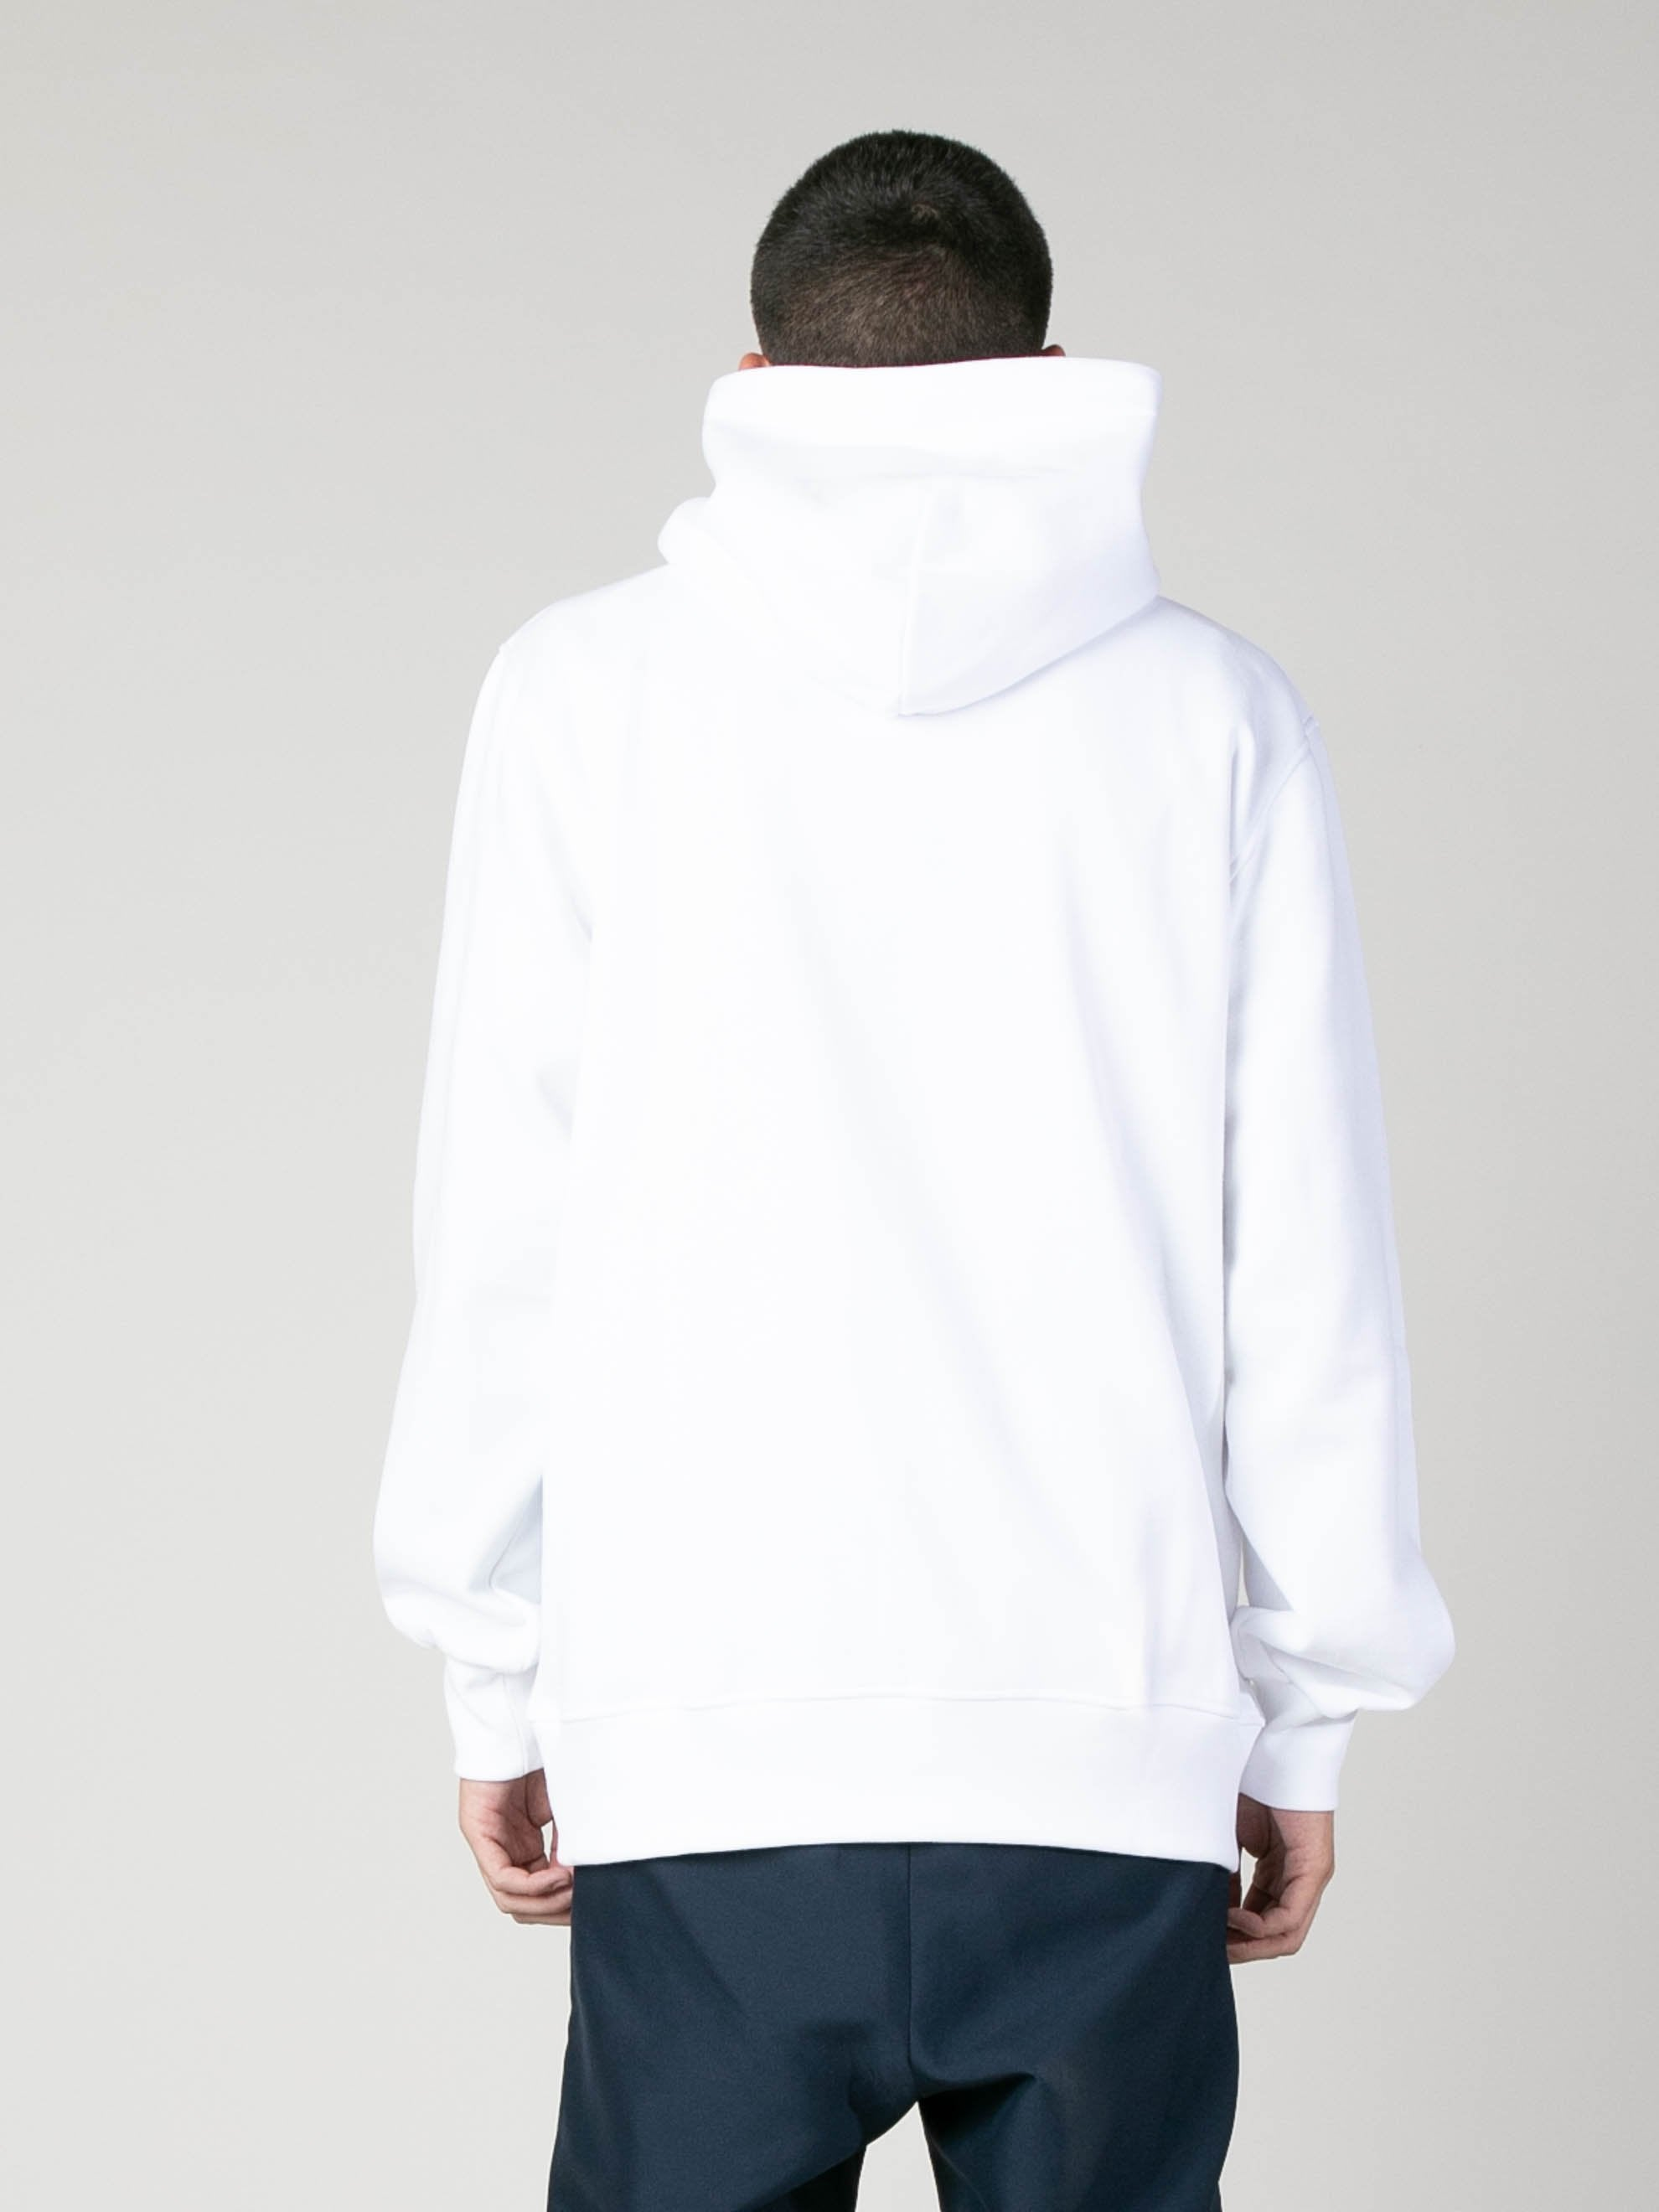 White Hoody With Botter Badge 6